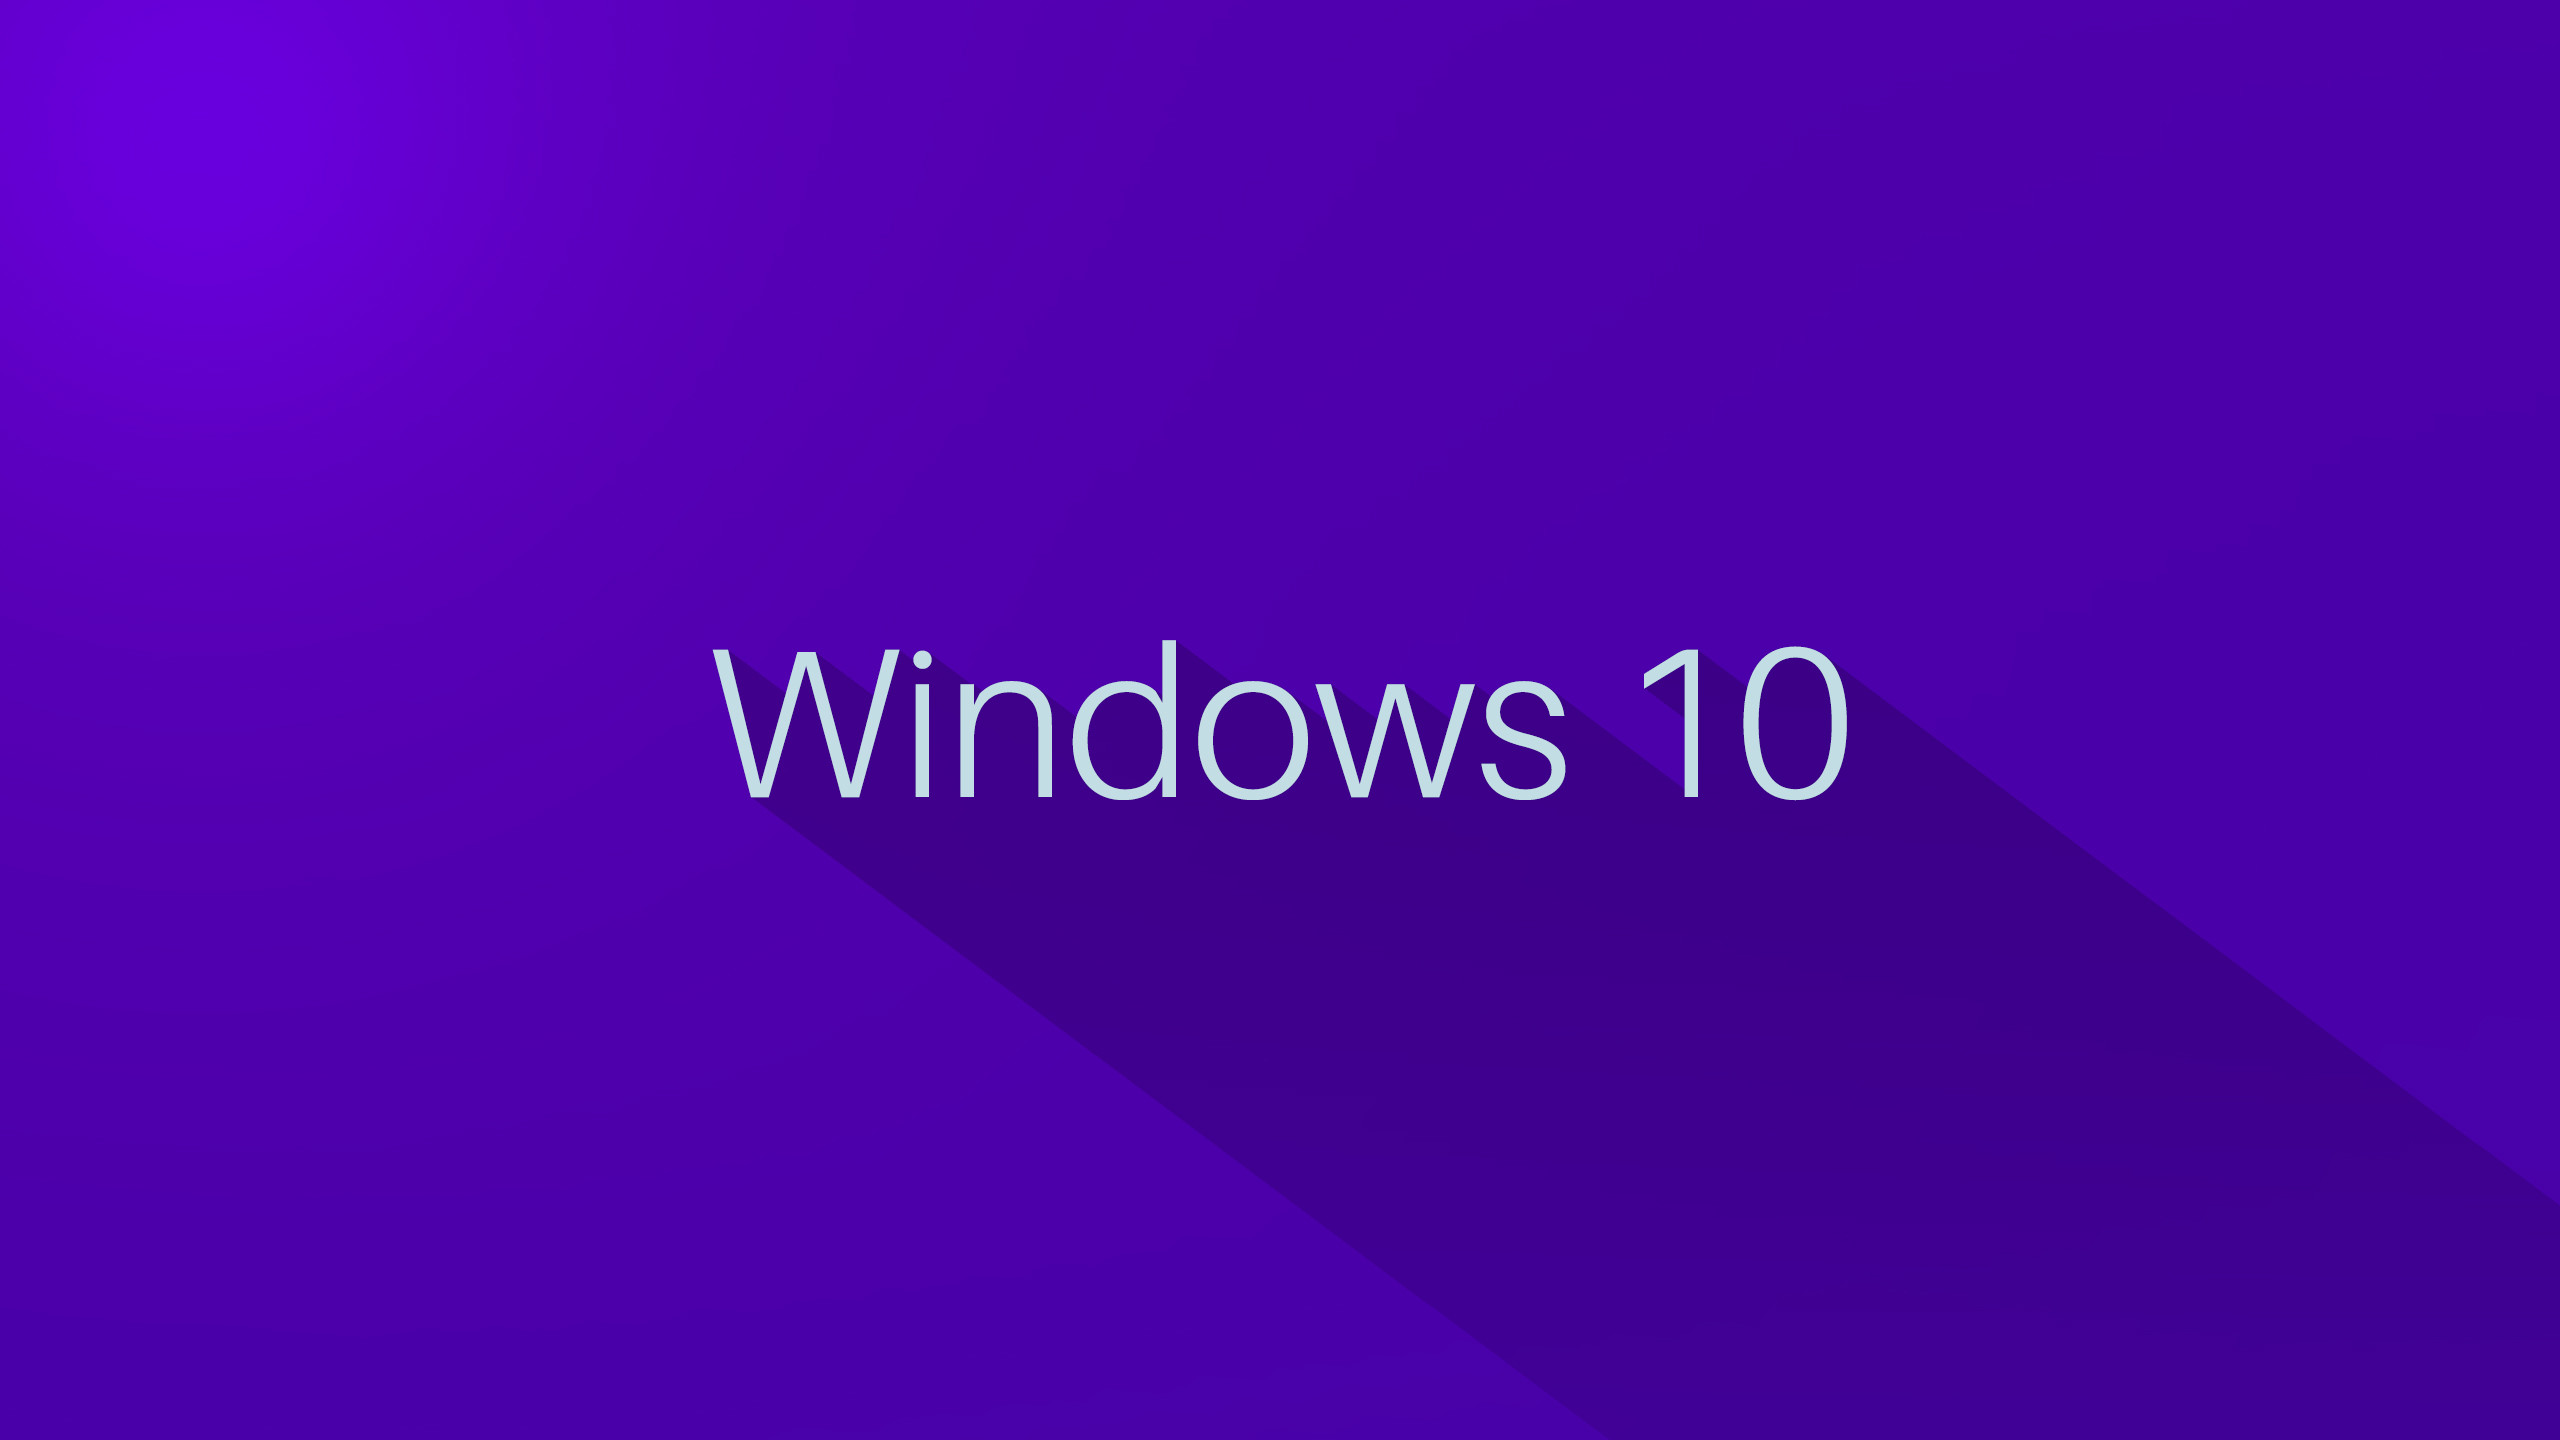 Purple Windows 10 Wallpaper Background 49913